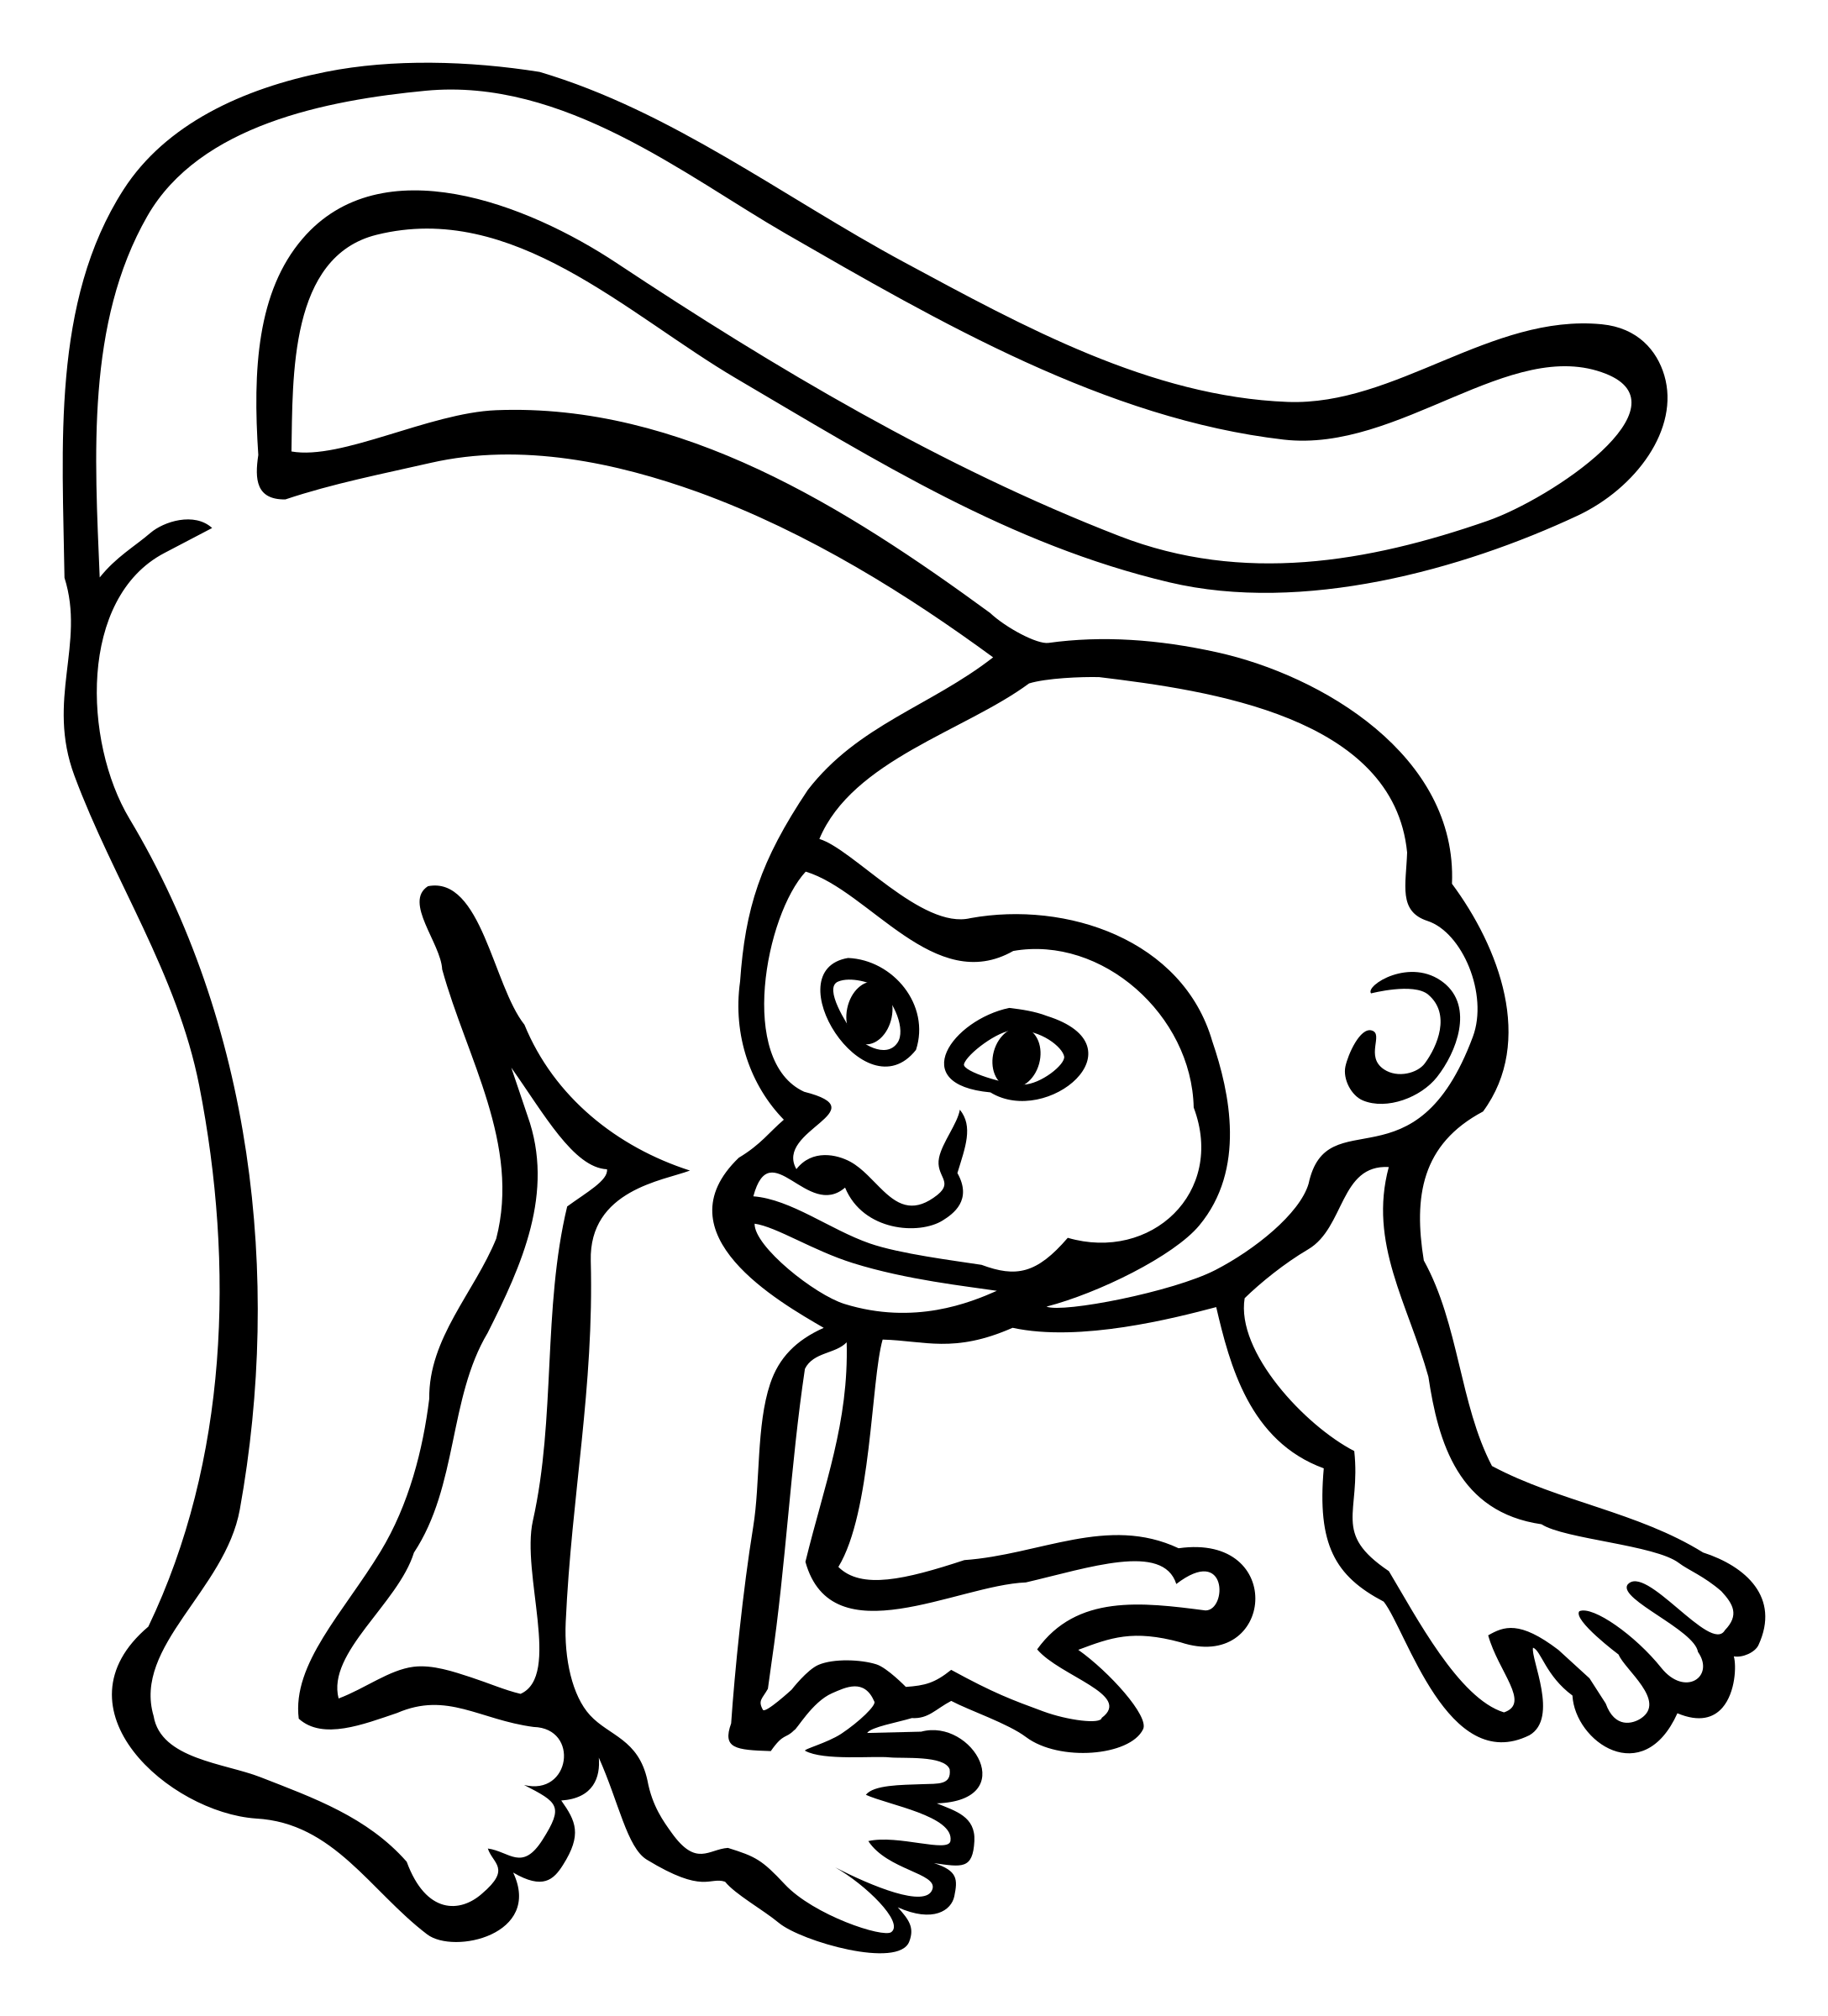 monkey - lineart by frankes